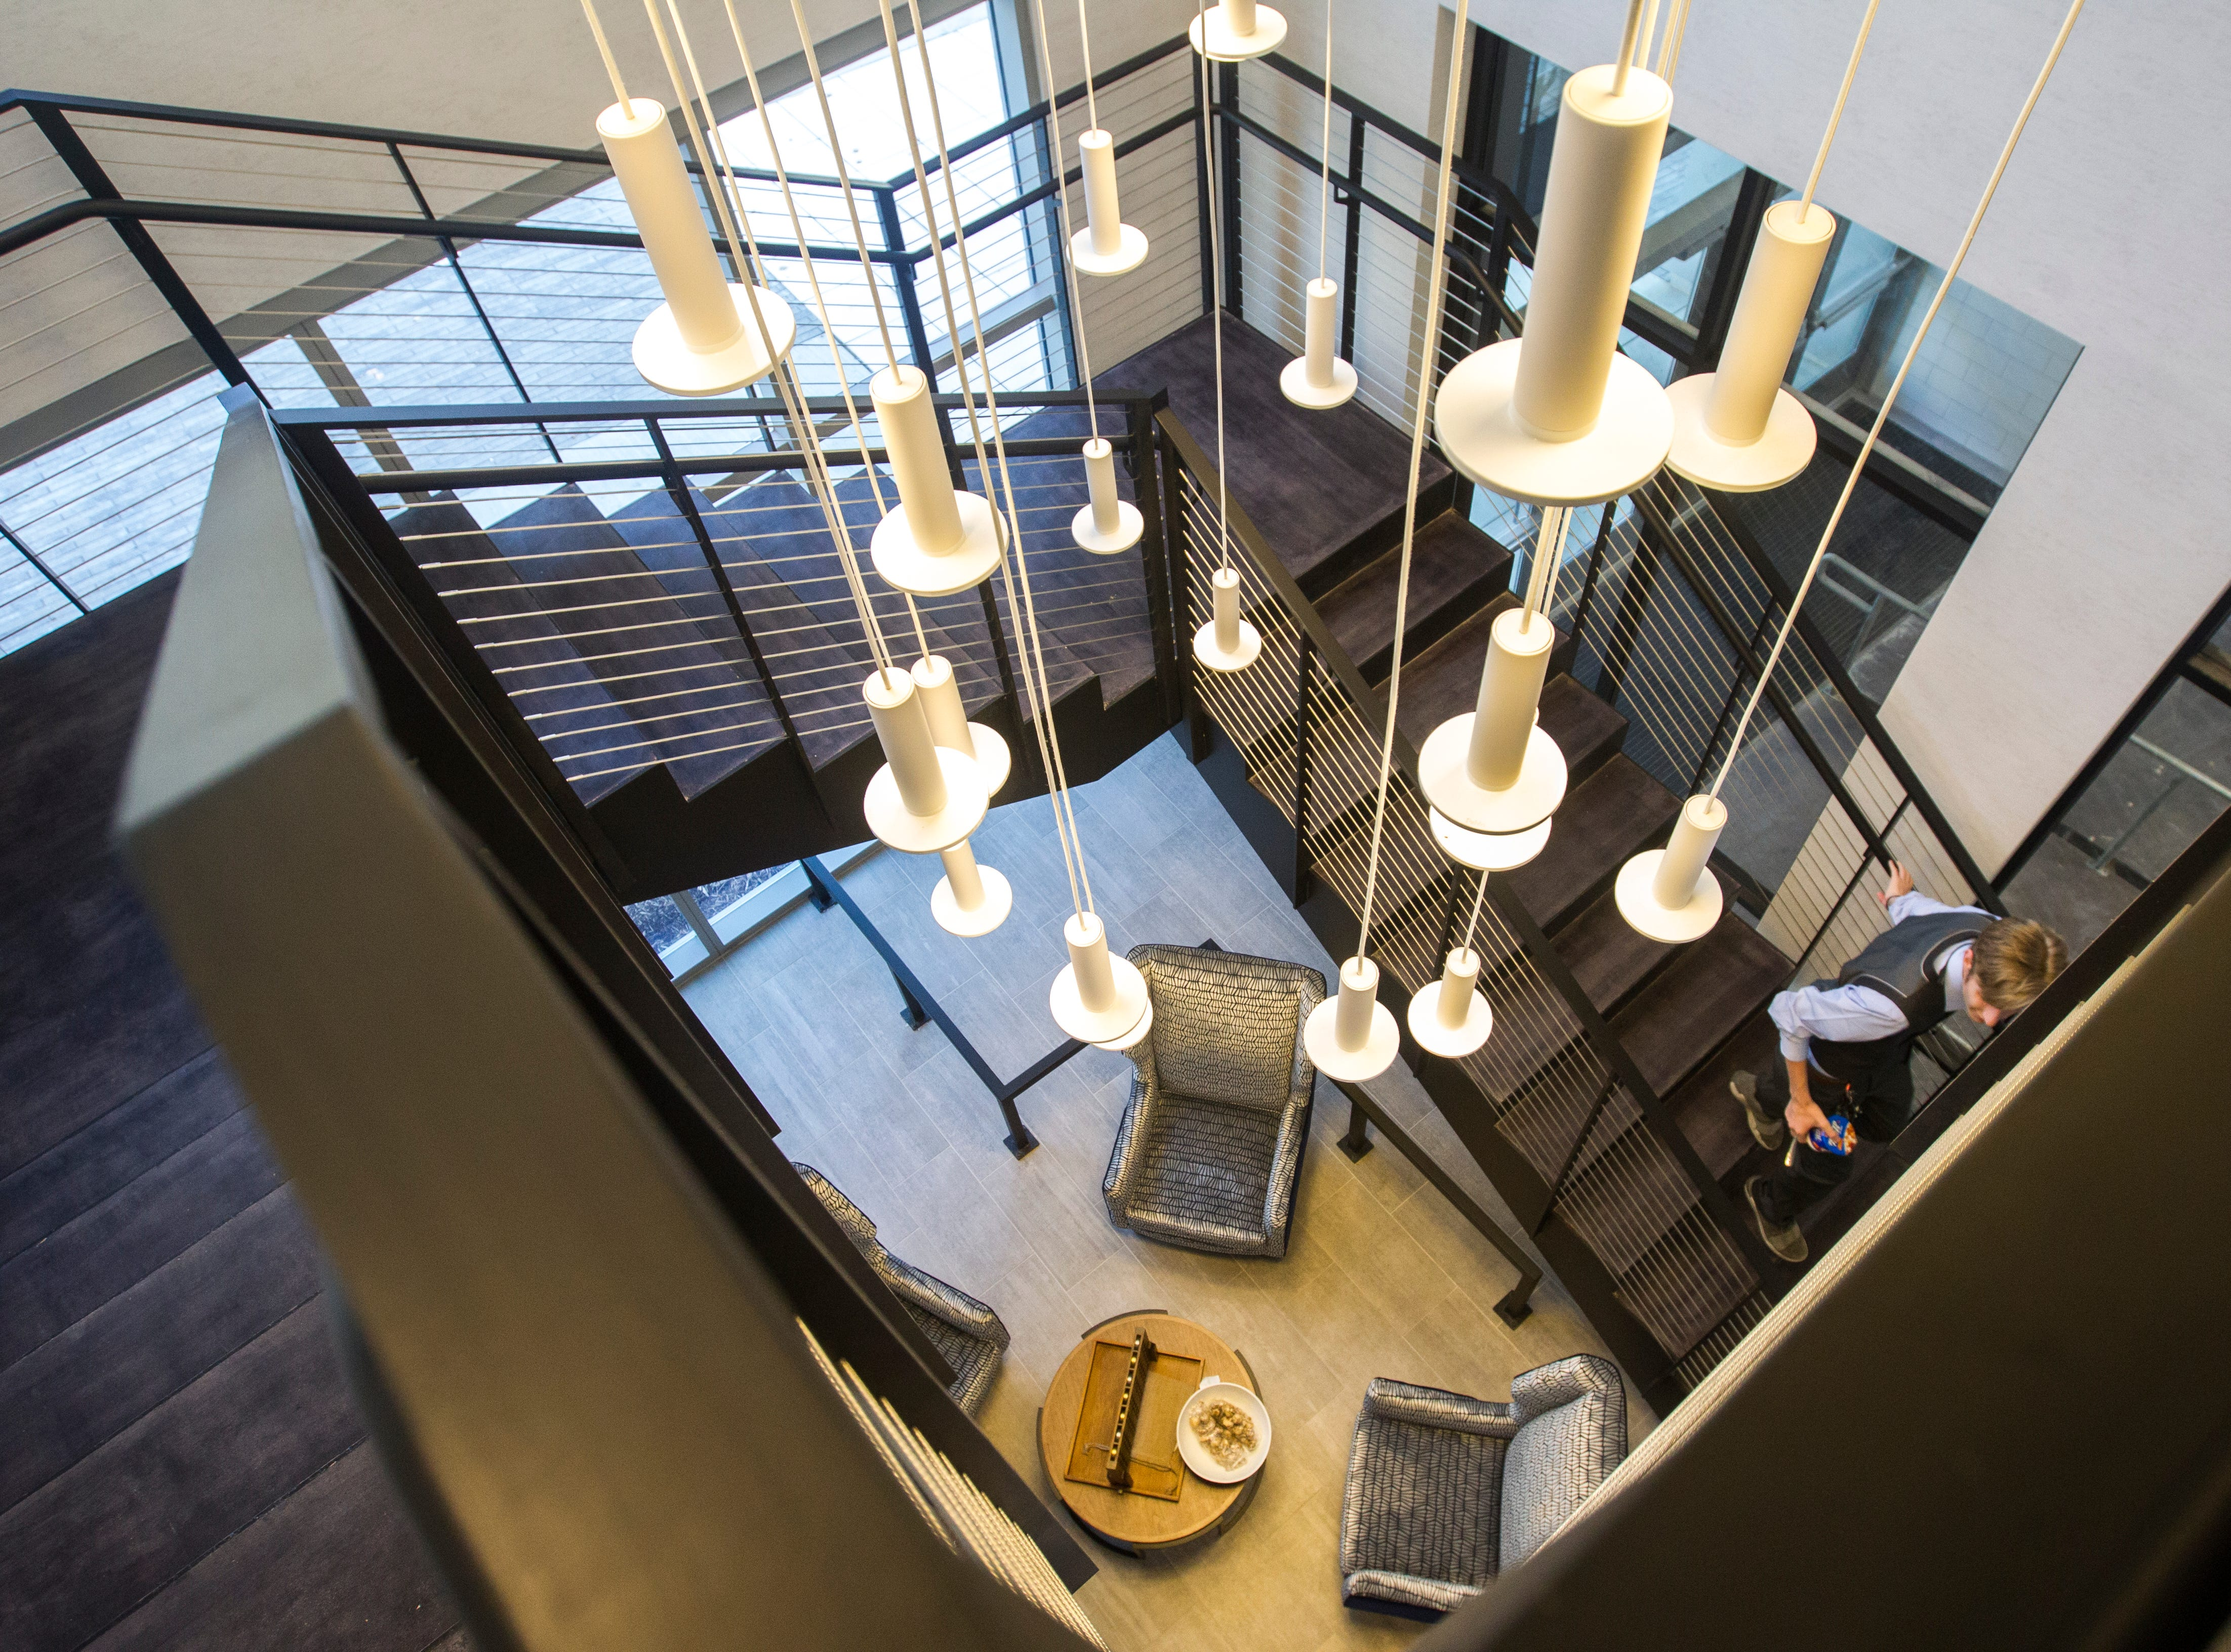 A staircase from the second floor breakfast area leads to the main lobby during a tour on Tuesday, Sept. 4, 2018, at Hyatt Place on the corner of Court and Linn Streets in downtown Iowa City.